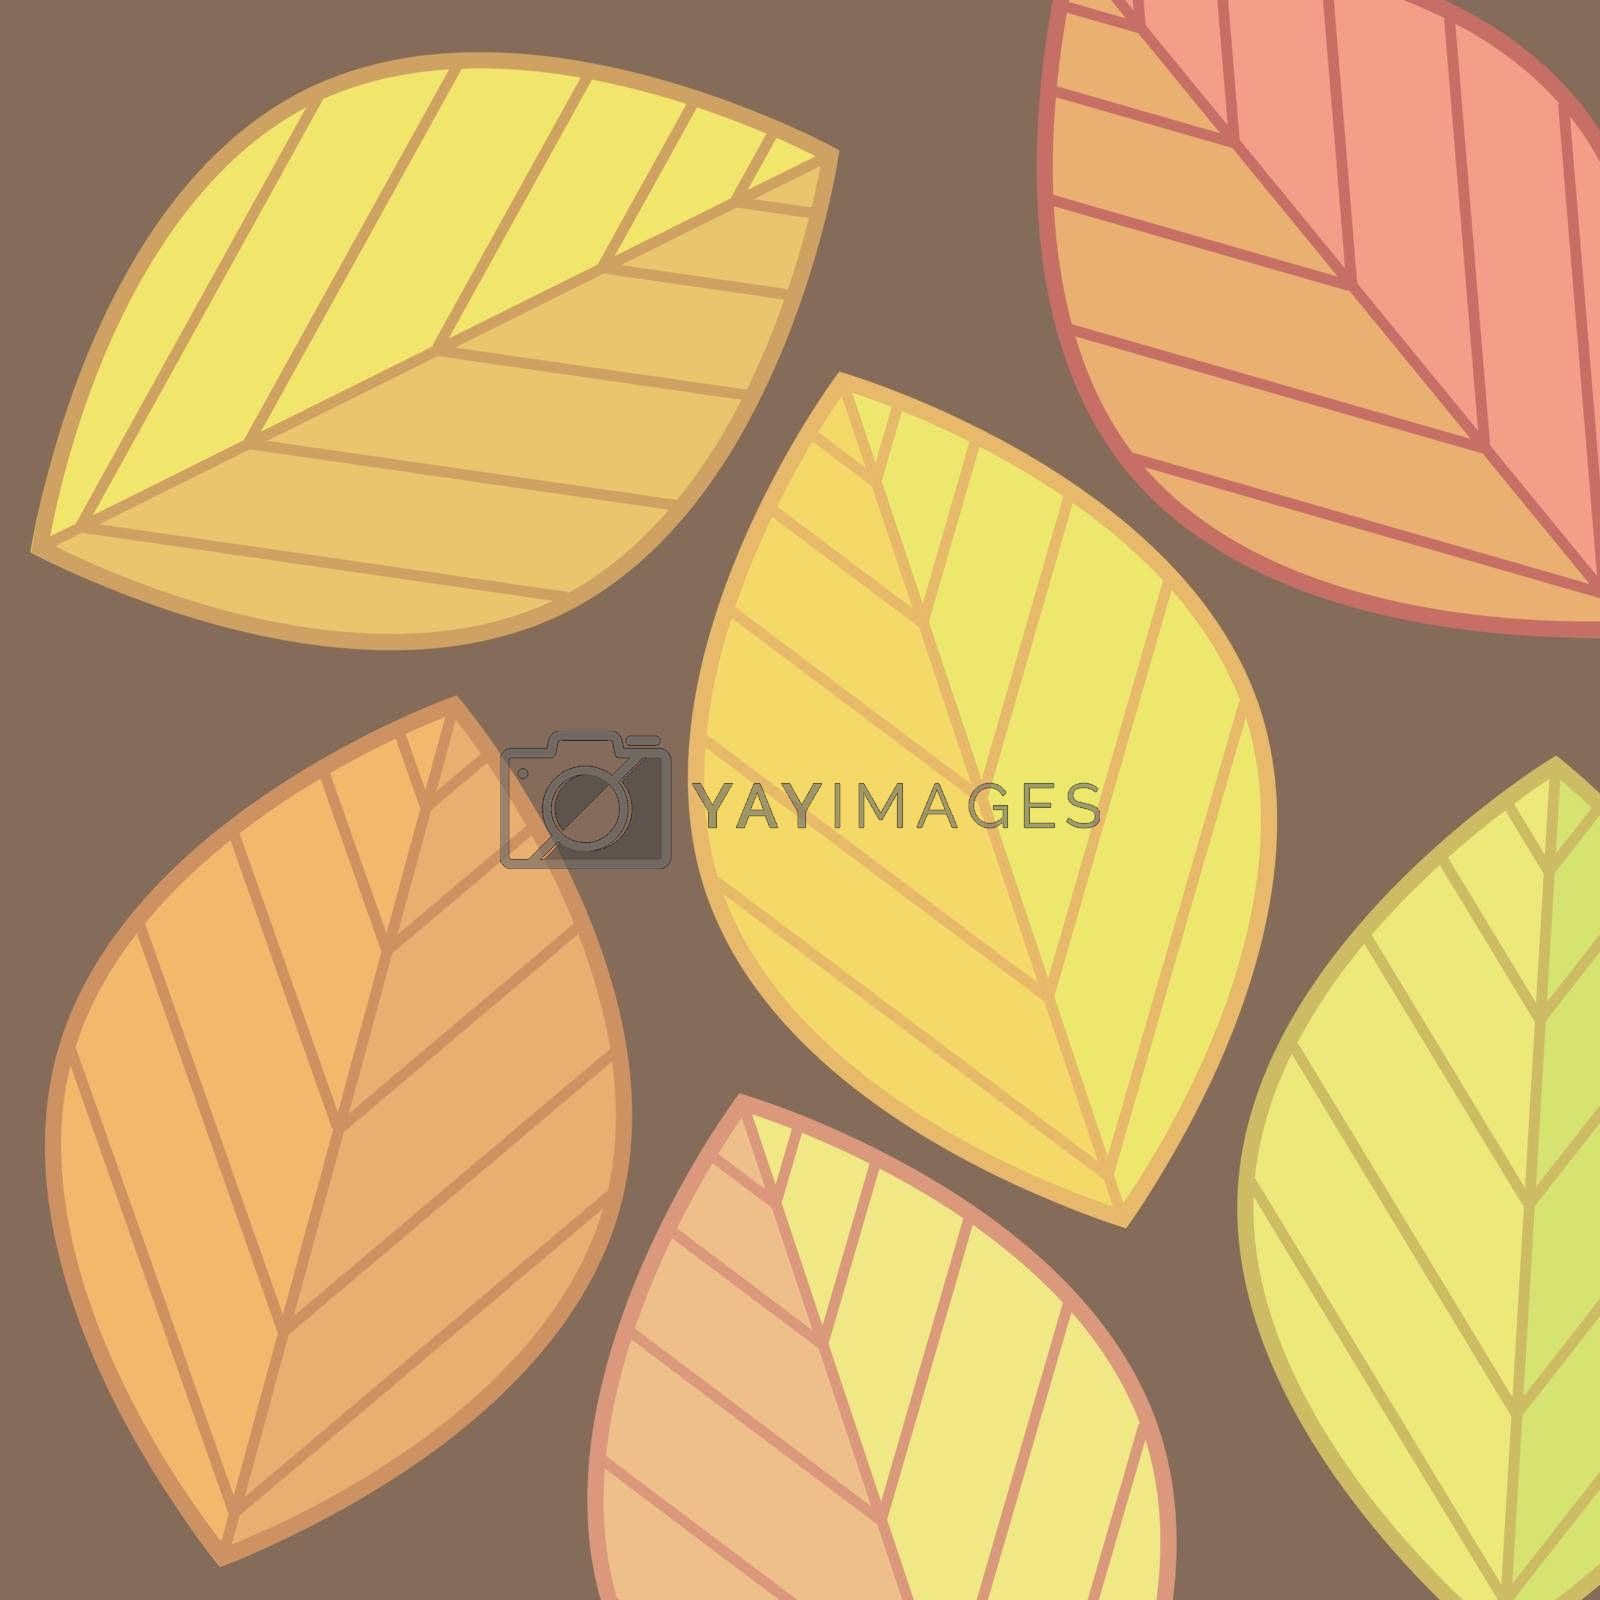 Many autumn leaves yellow and red colors for design. Beautiful background.